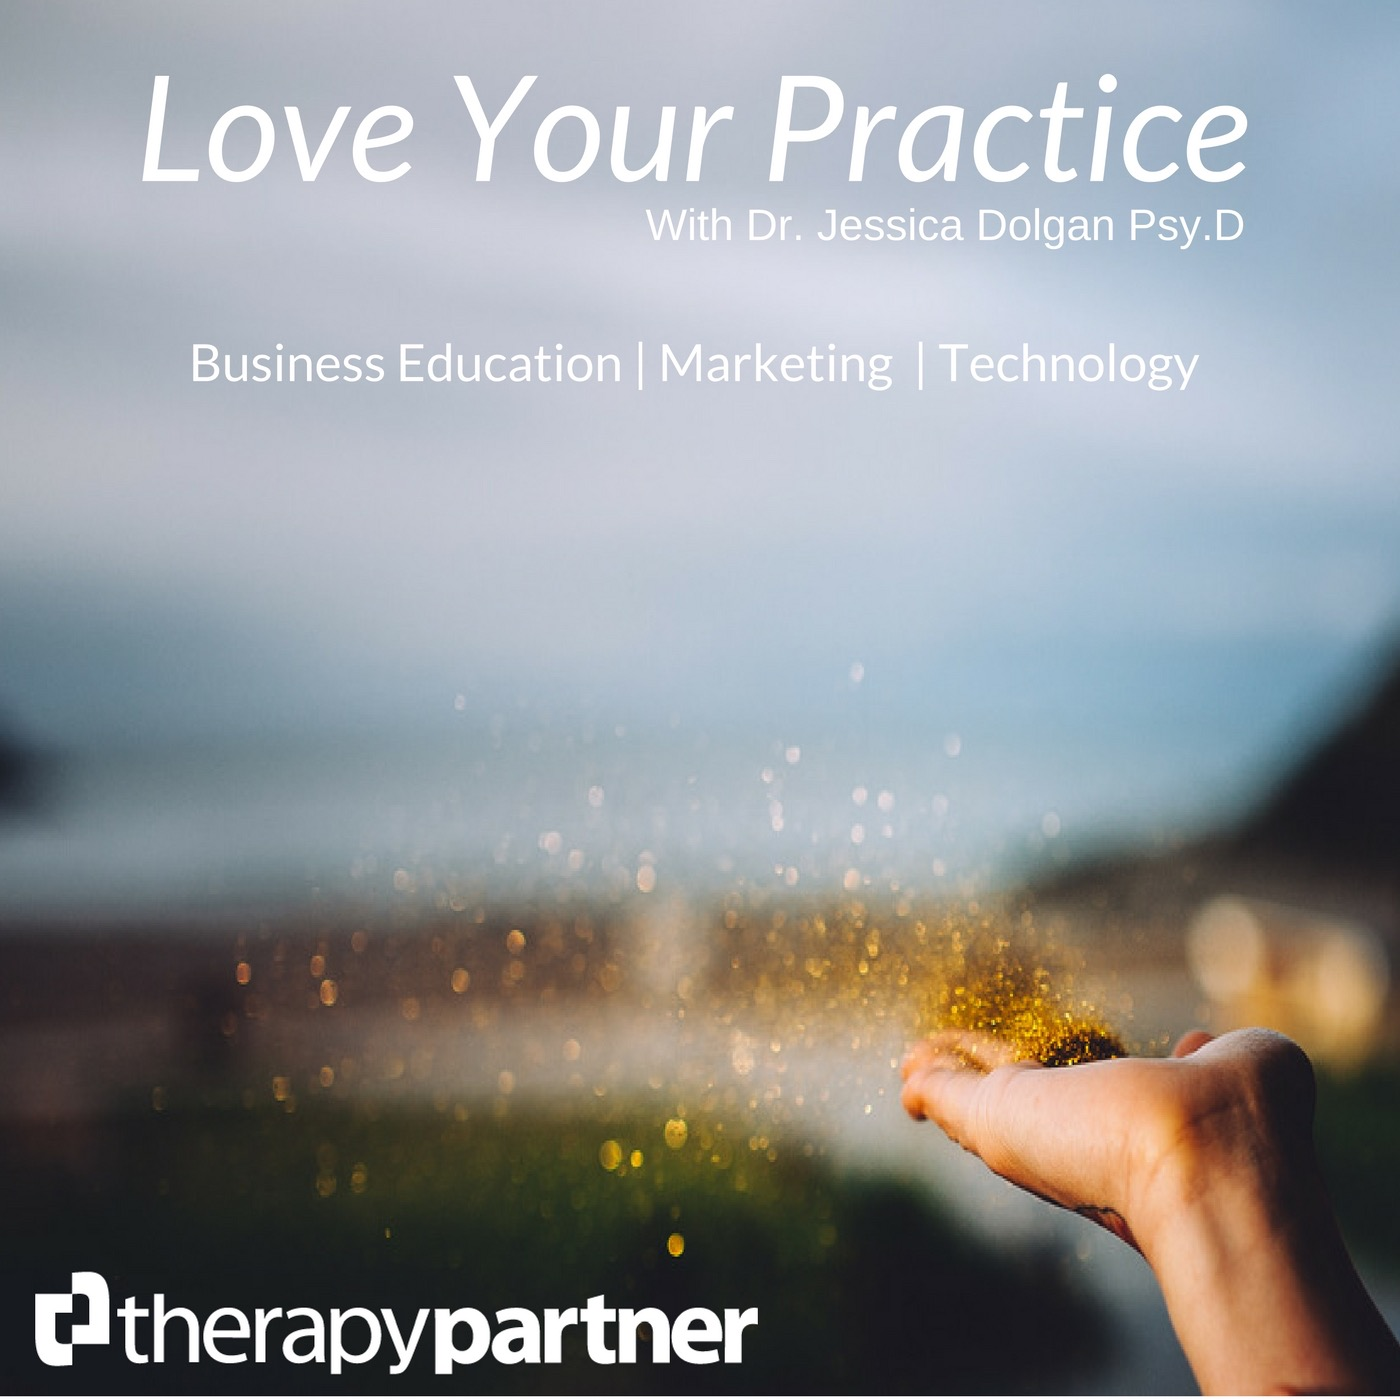 Love Your Practice Podcast from Therapy Partner | Marketing | Business Strategy | Small Business Growth show art